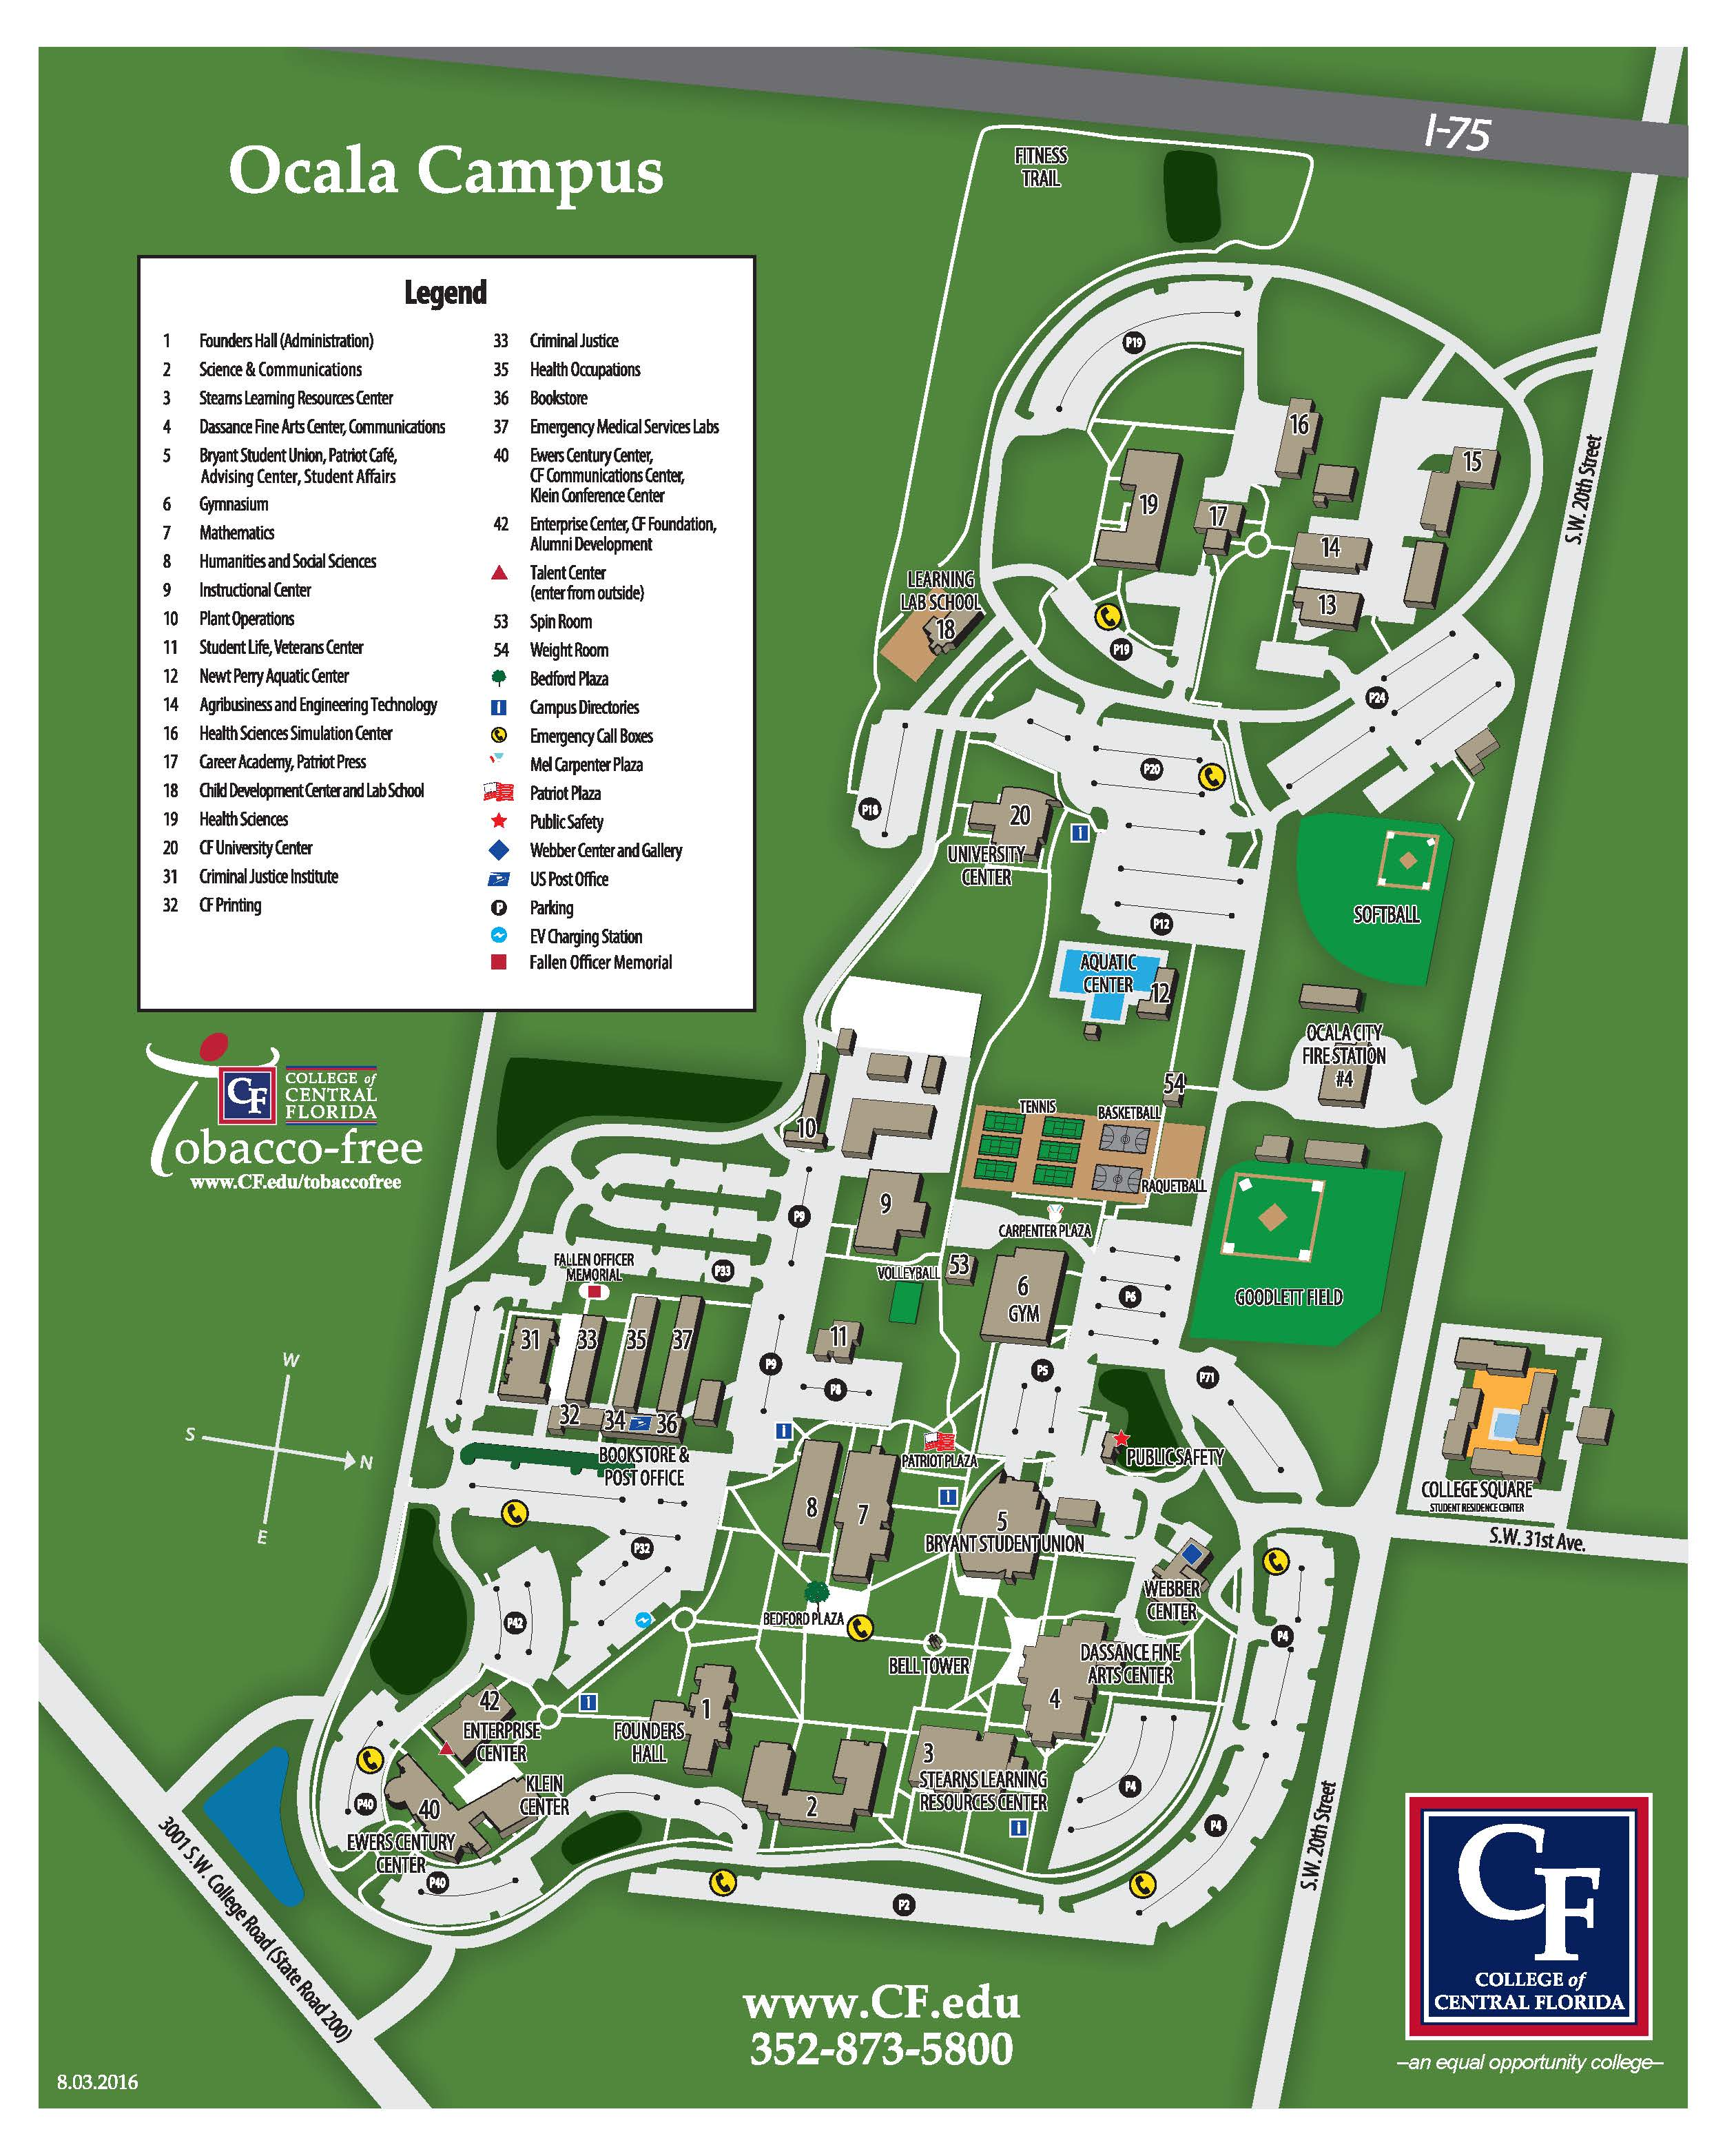 College of Central Florida - Ocala Campus Map